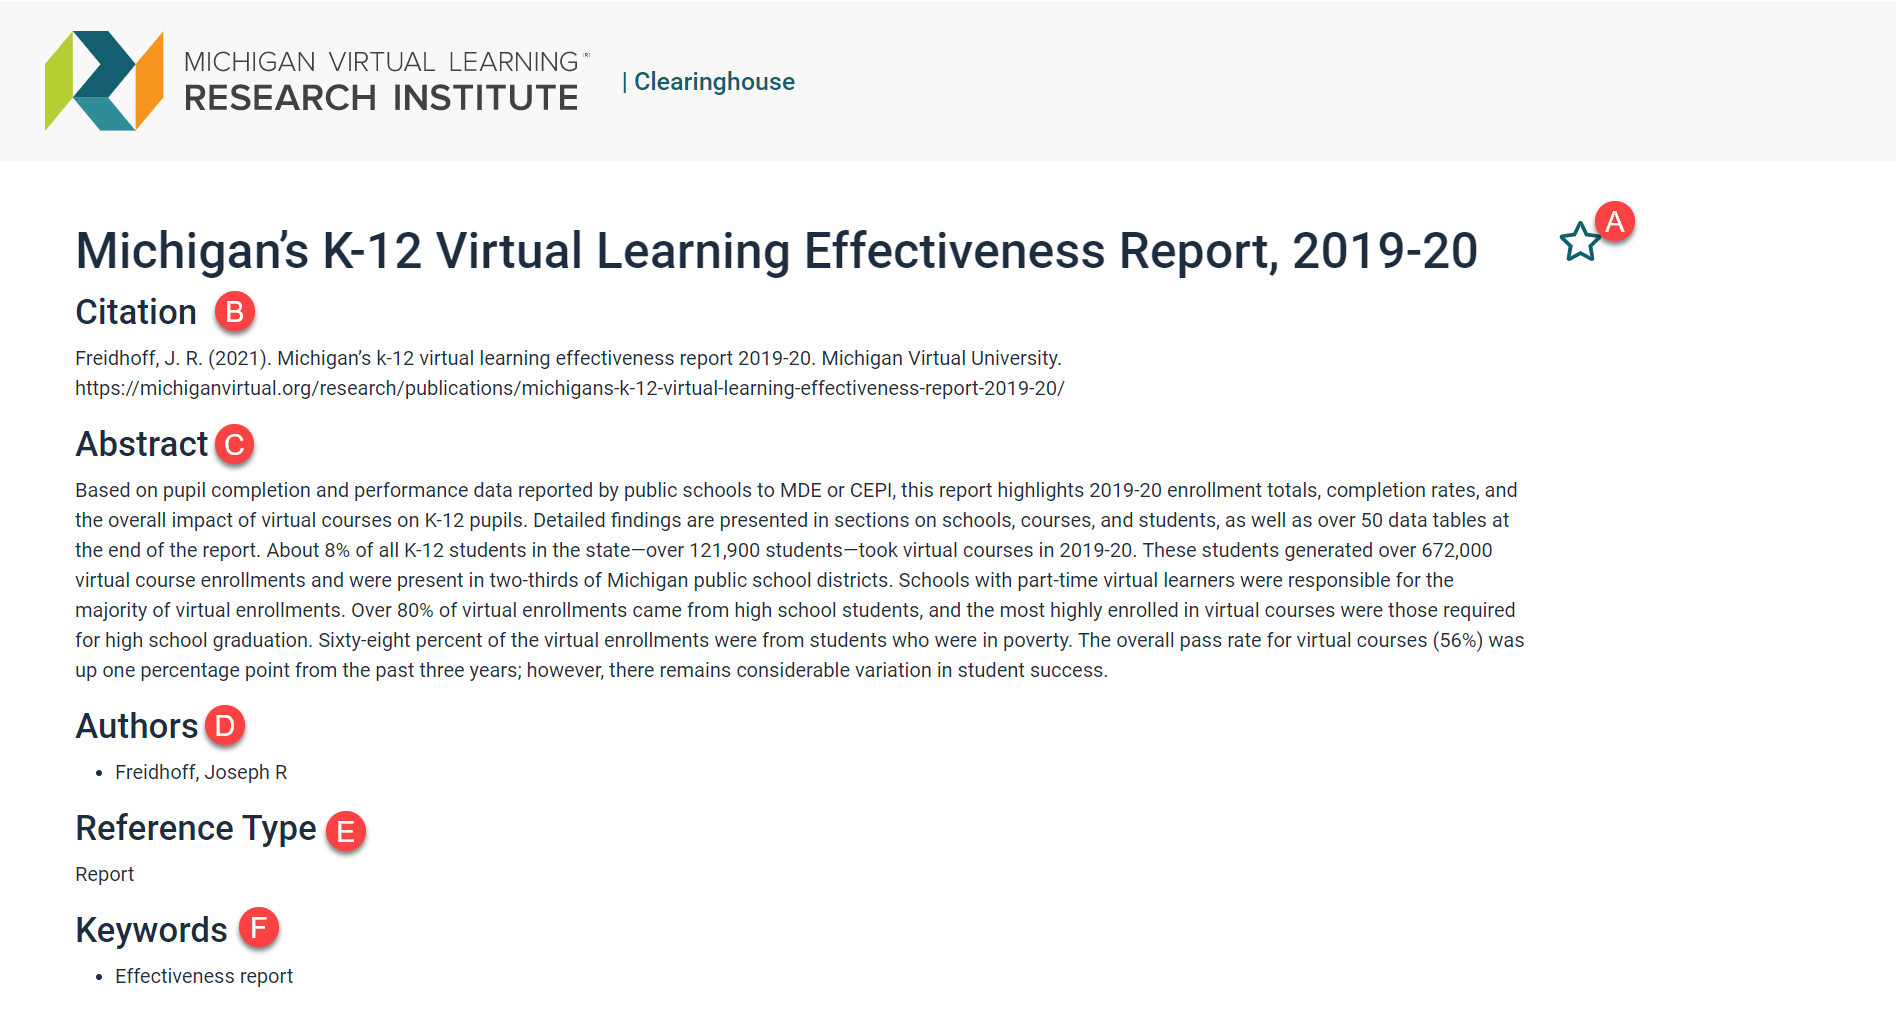 The Record is sown for Michigan's K-12 Virtual Learning Effectiveness Report. Stamp A is shown to the right of this title. Stamp B is displayed next to Citation below the title. Stamp C is located under citation text. Stamp D is shown next to Authors. Stamp E is displayed next to Reference Type and stamp F is located next to Keywords.